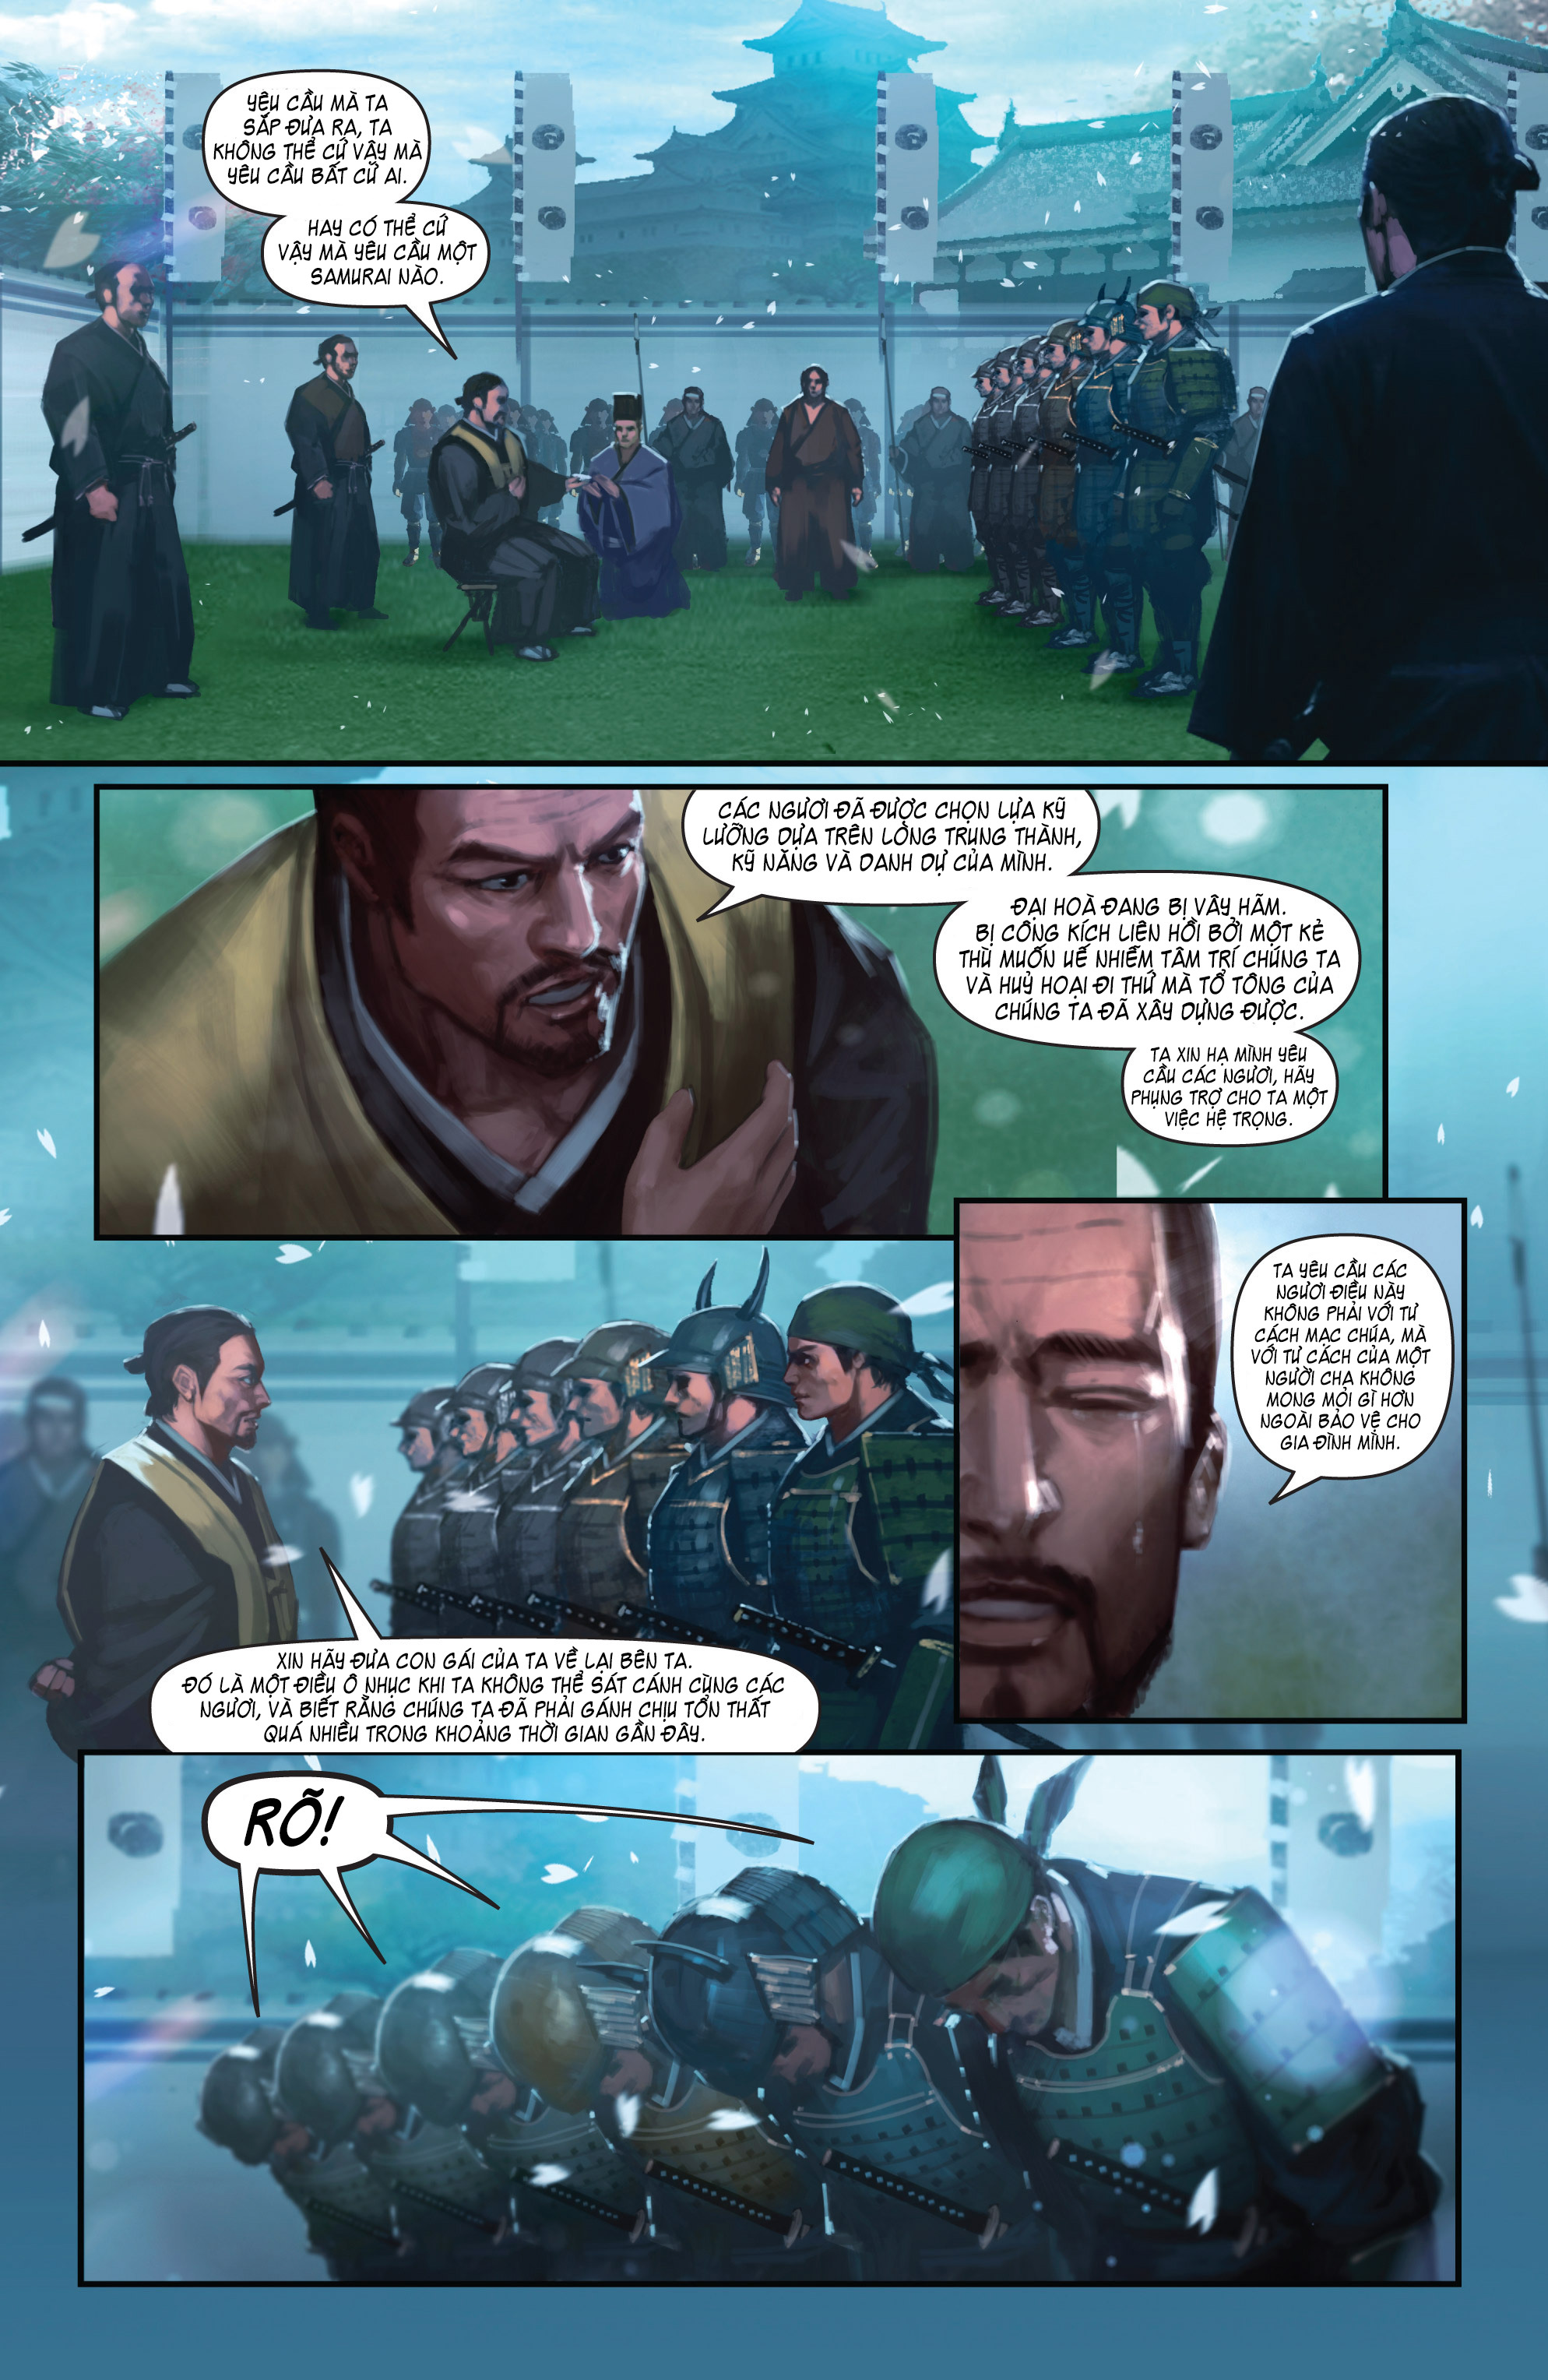 BUSHIDO - THE WAY OF THE WARRIOR chapter 4 trang 12